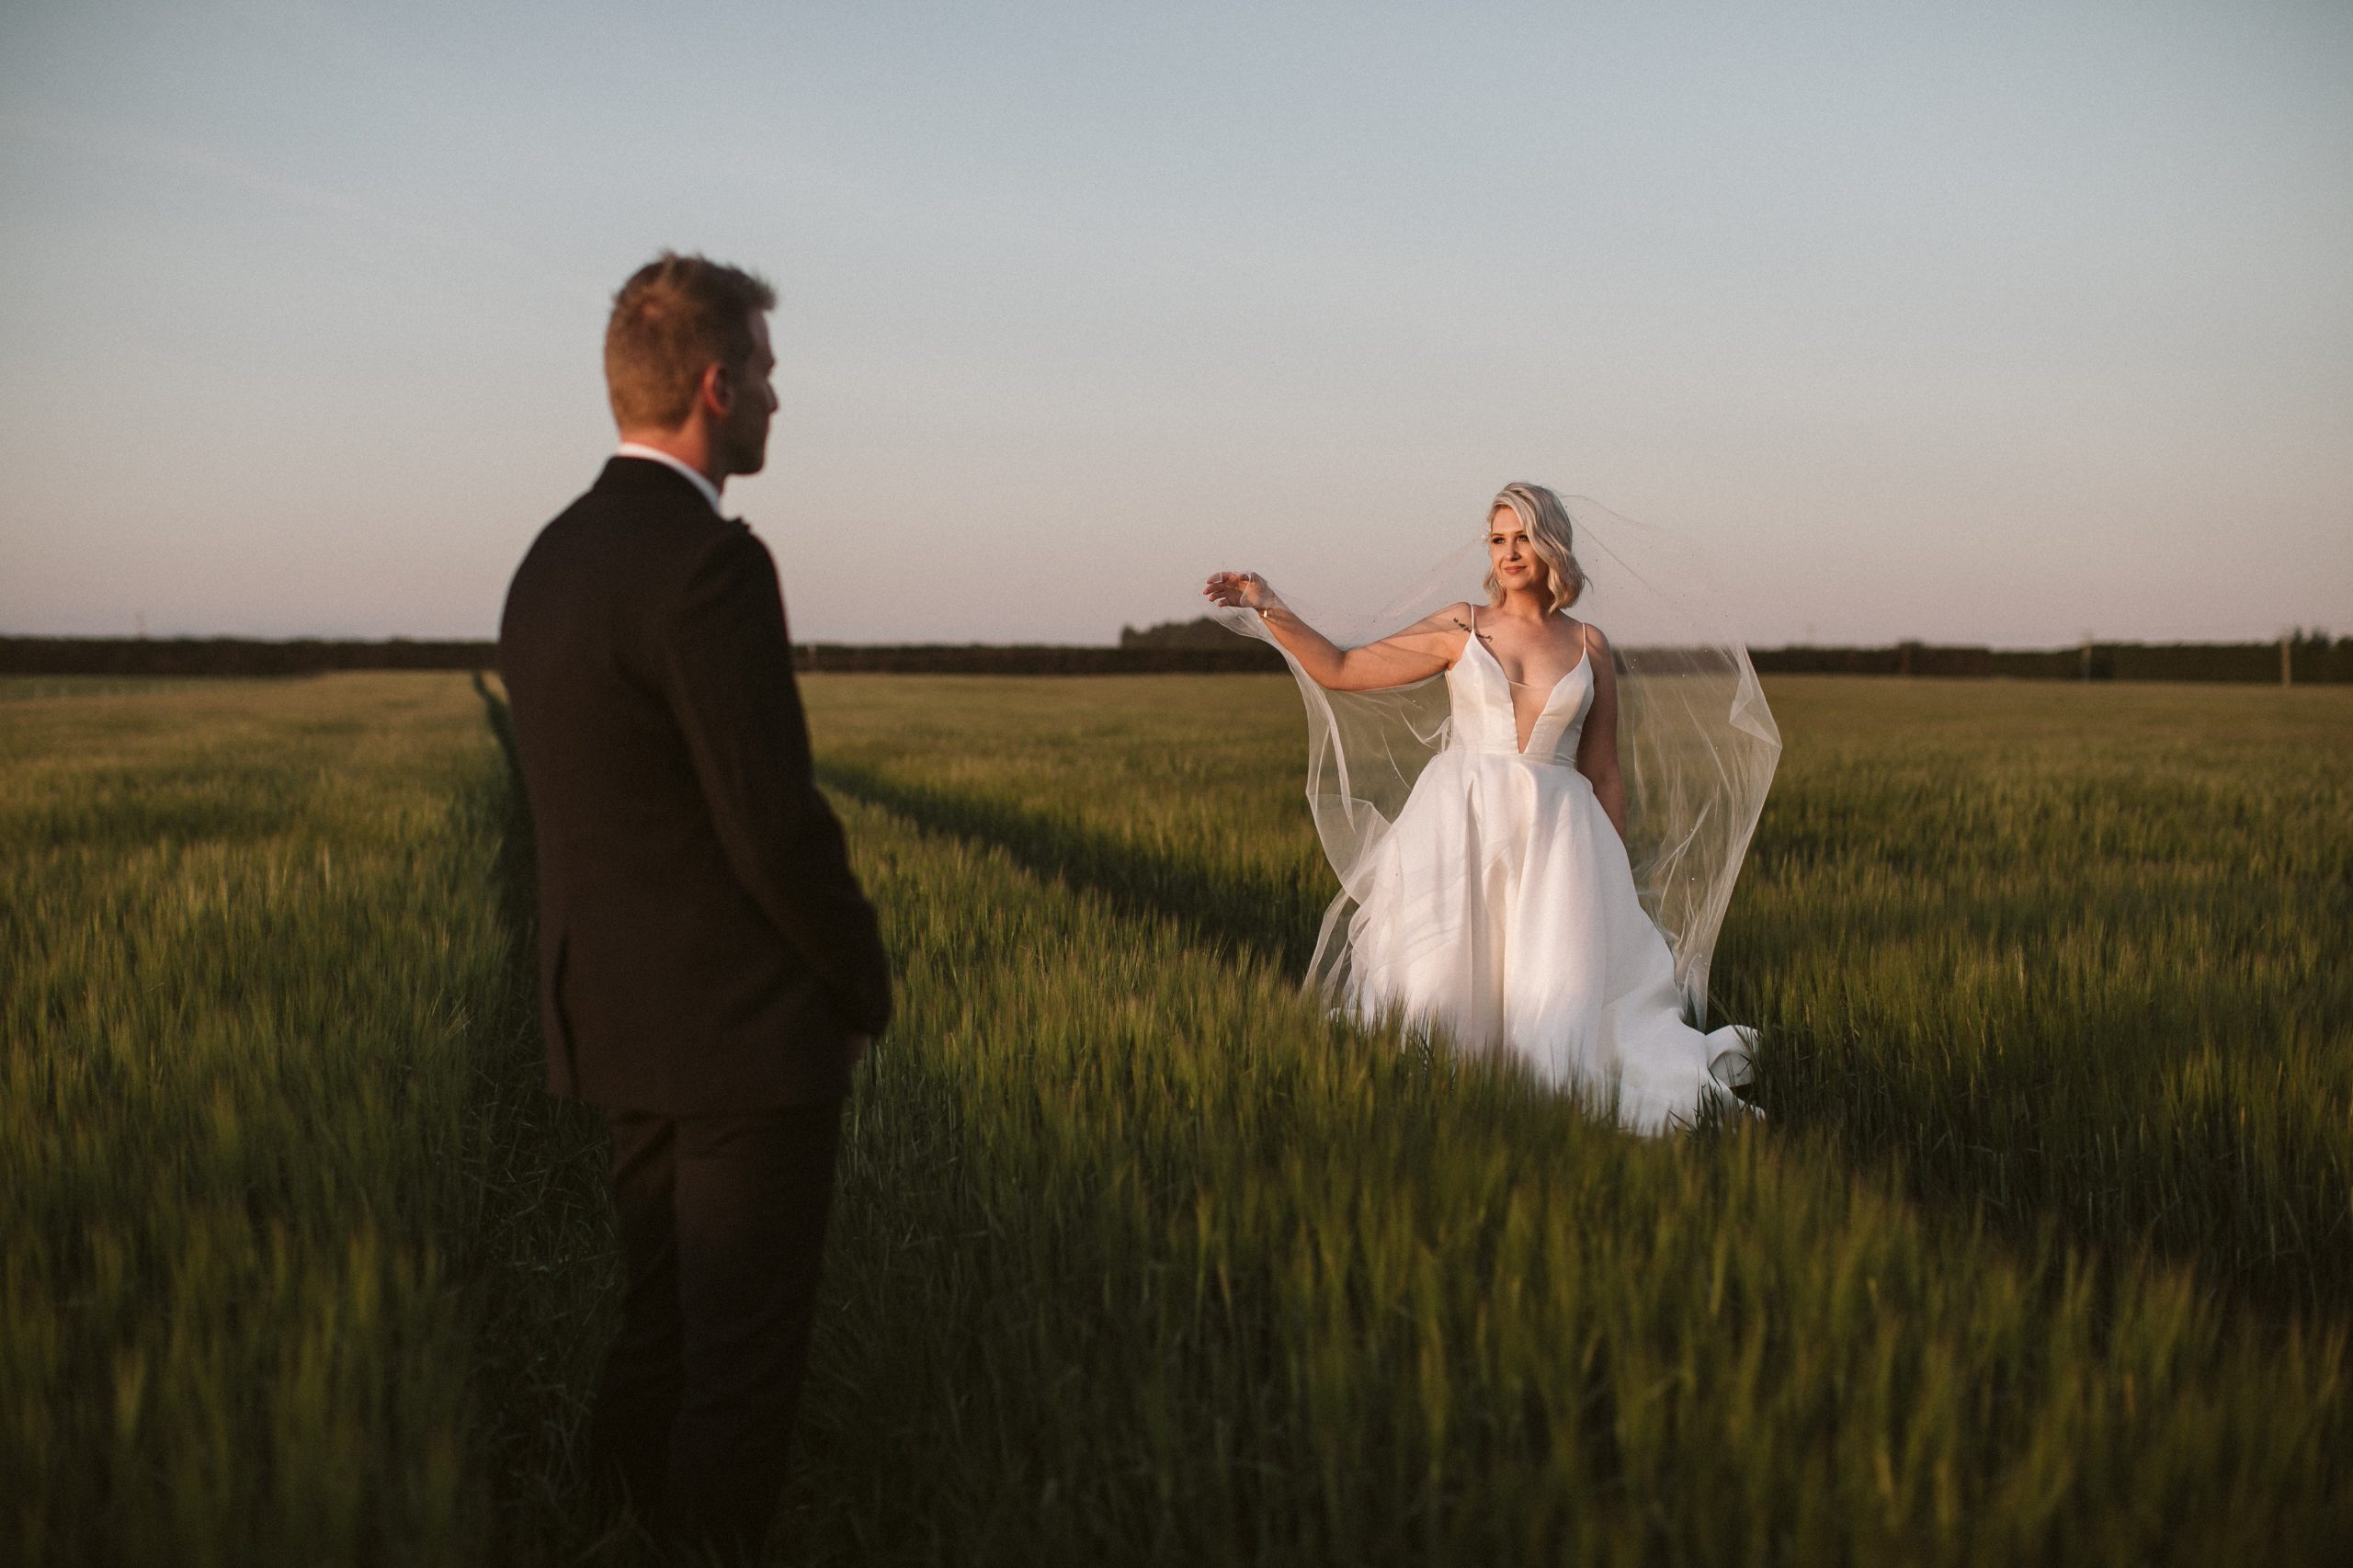 Bride and groom in wheat field at sunset